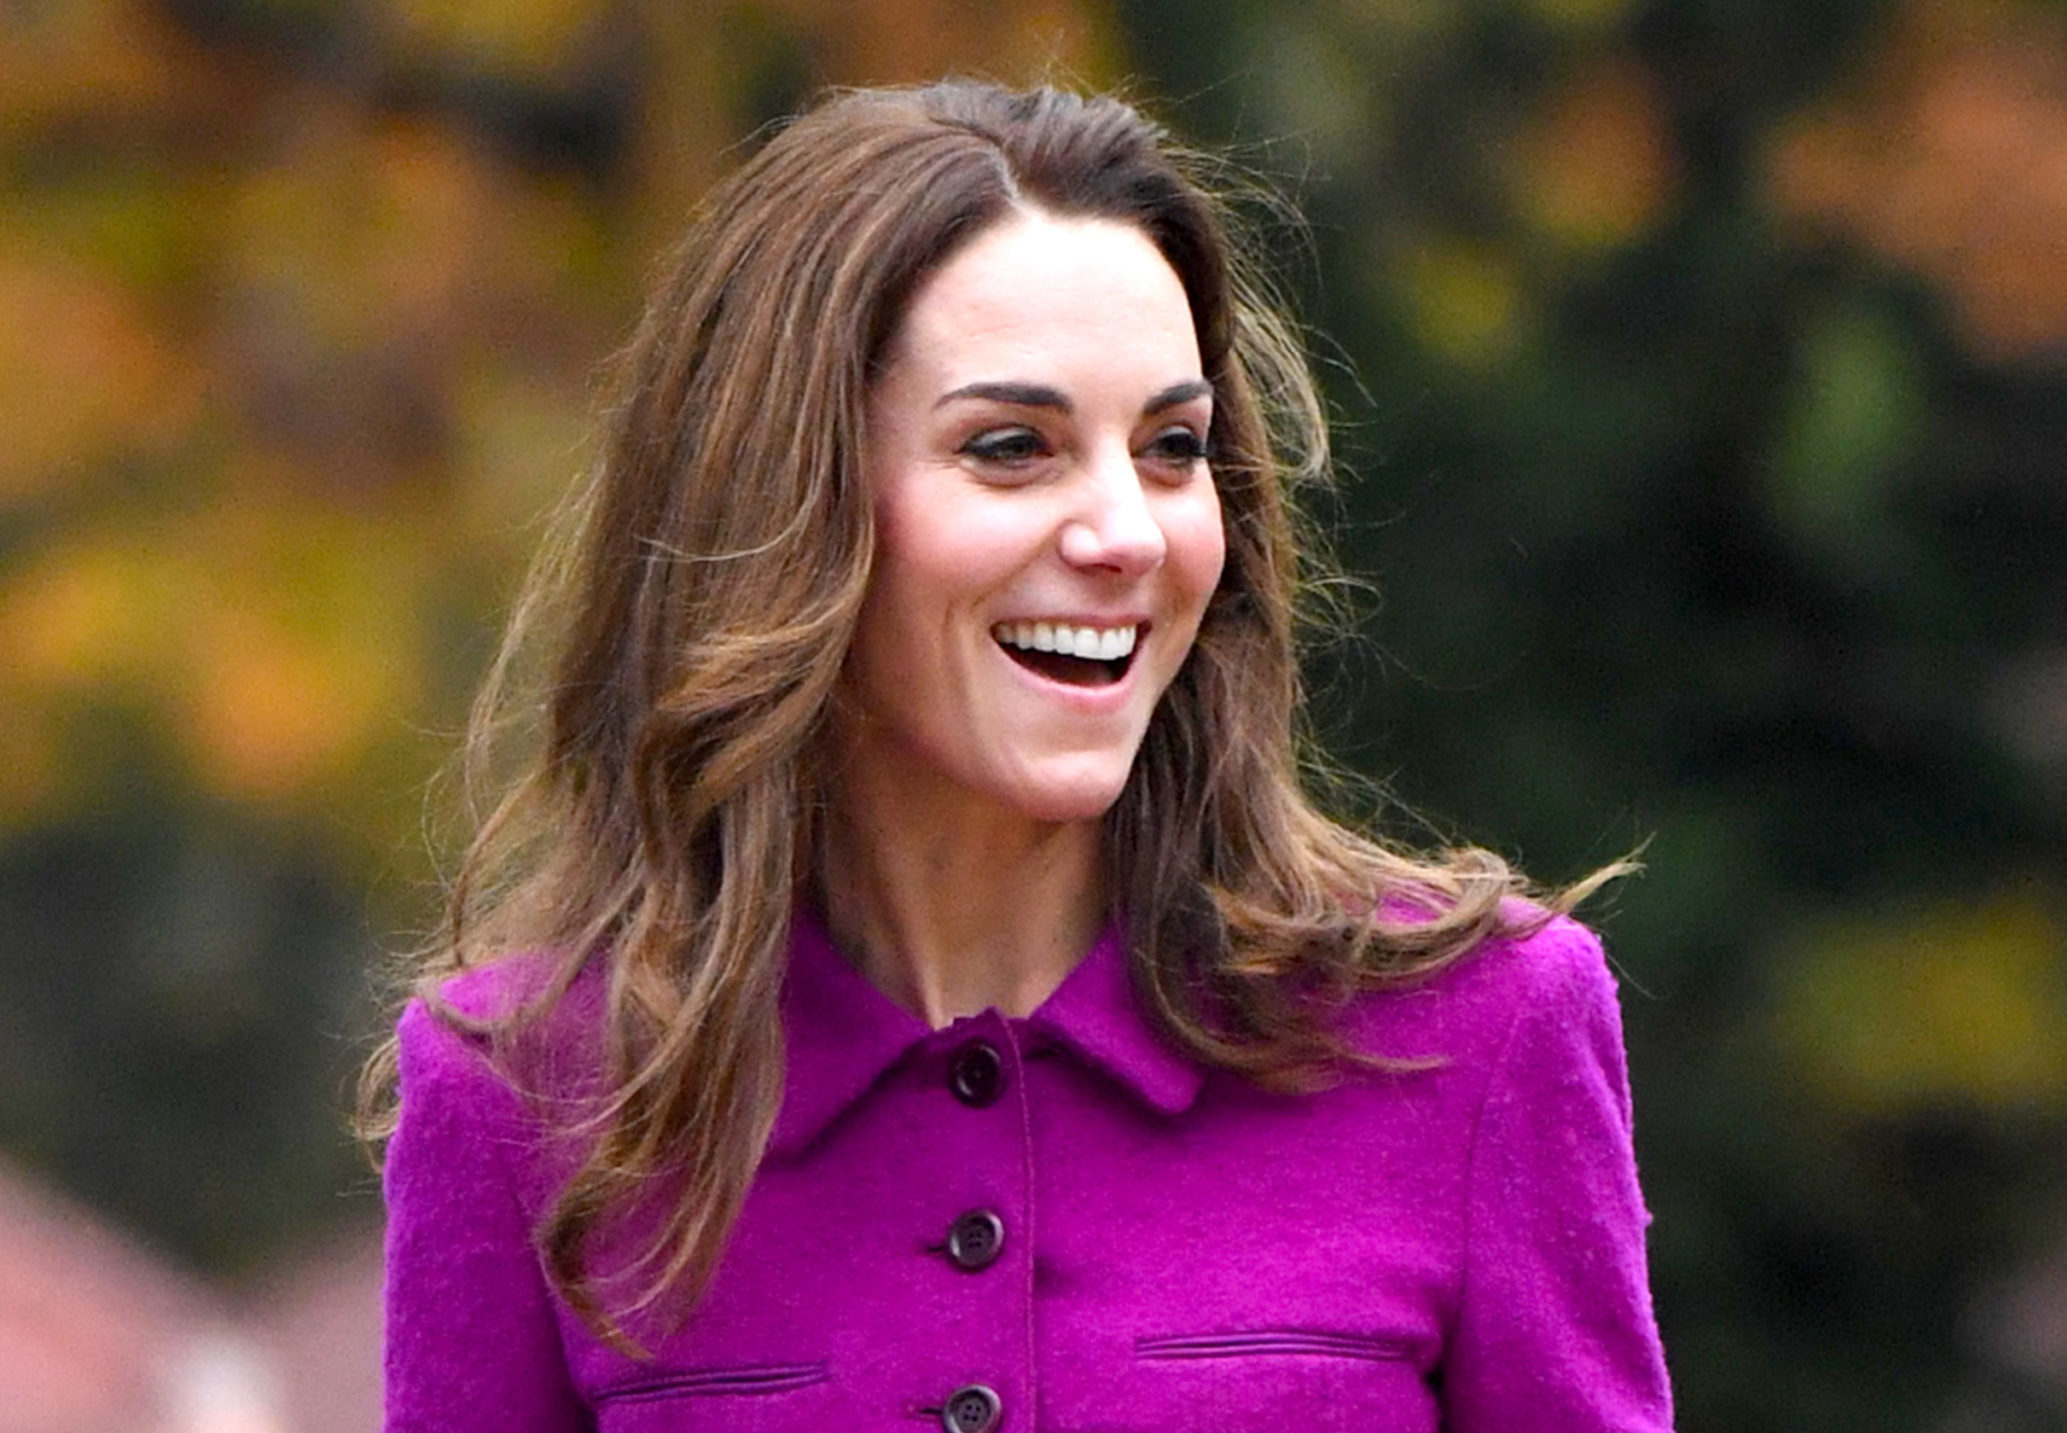 Kate Middleton shows off glowing tan and causal look in lockdown video